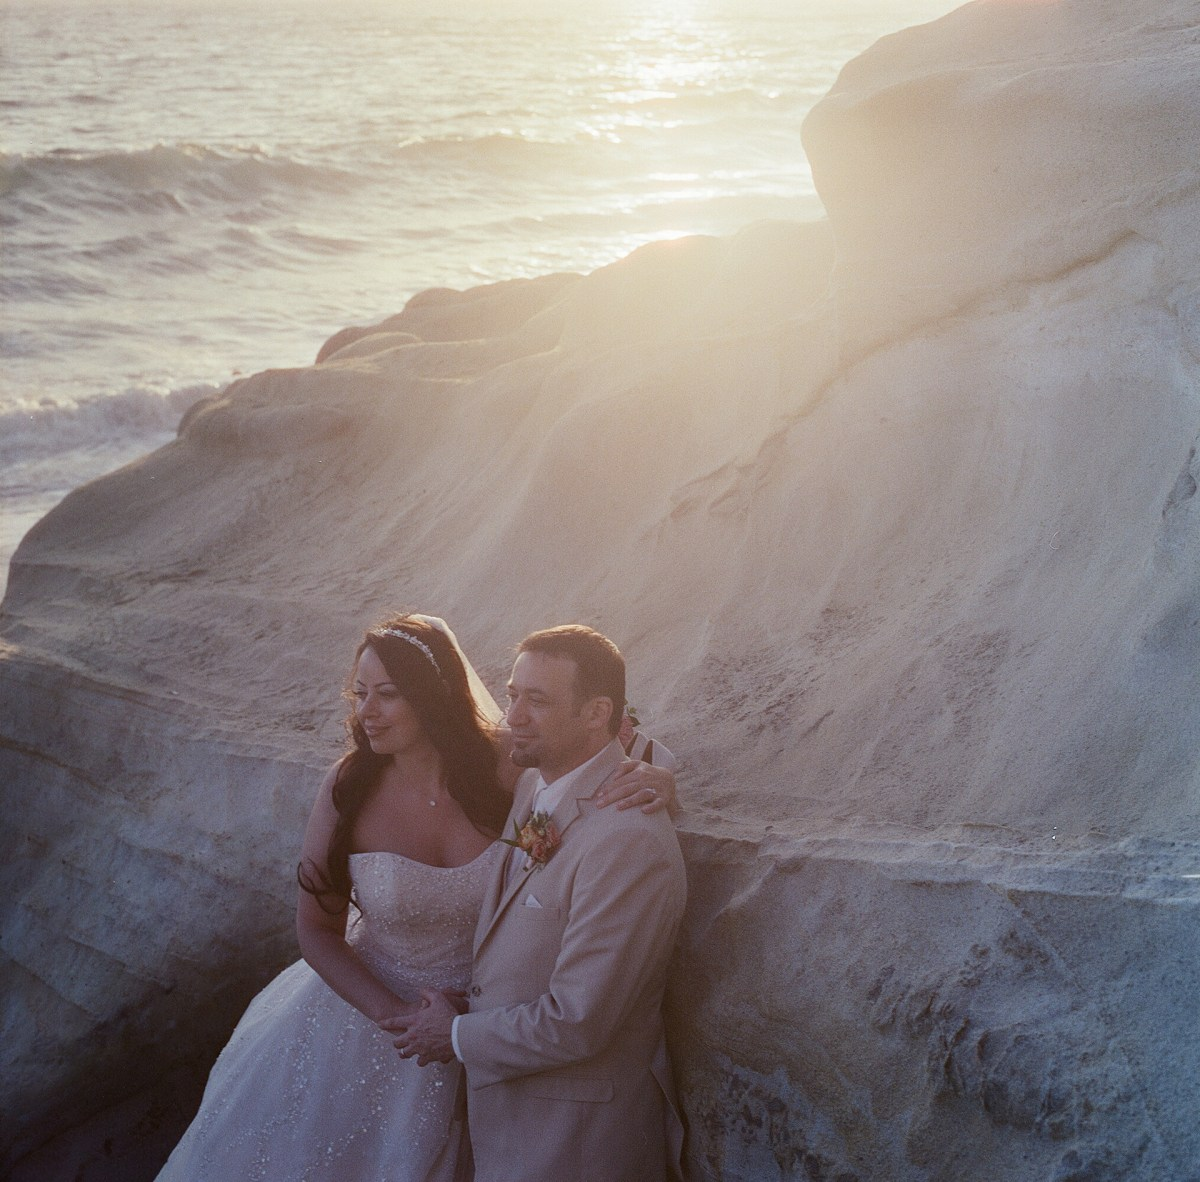 surf and sand resort wedding photographer nicole caldwell cinestill film bride and groom on beach